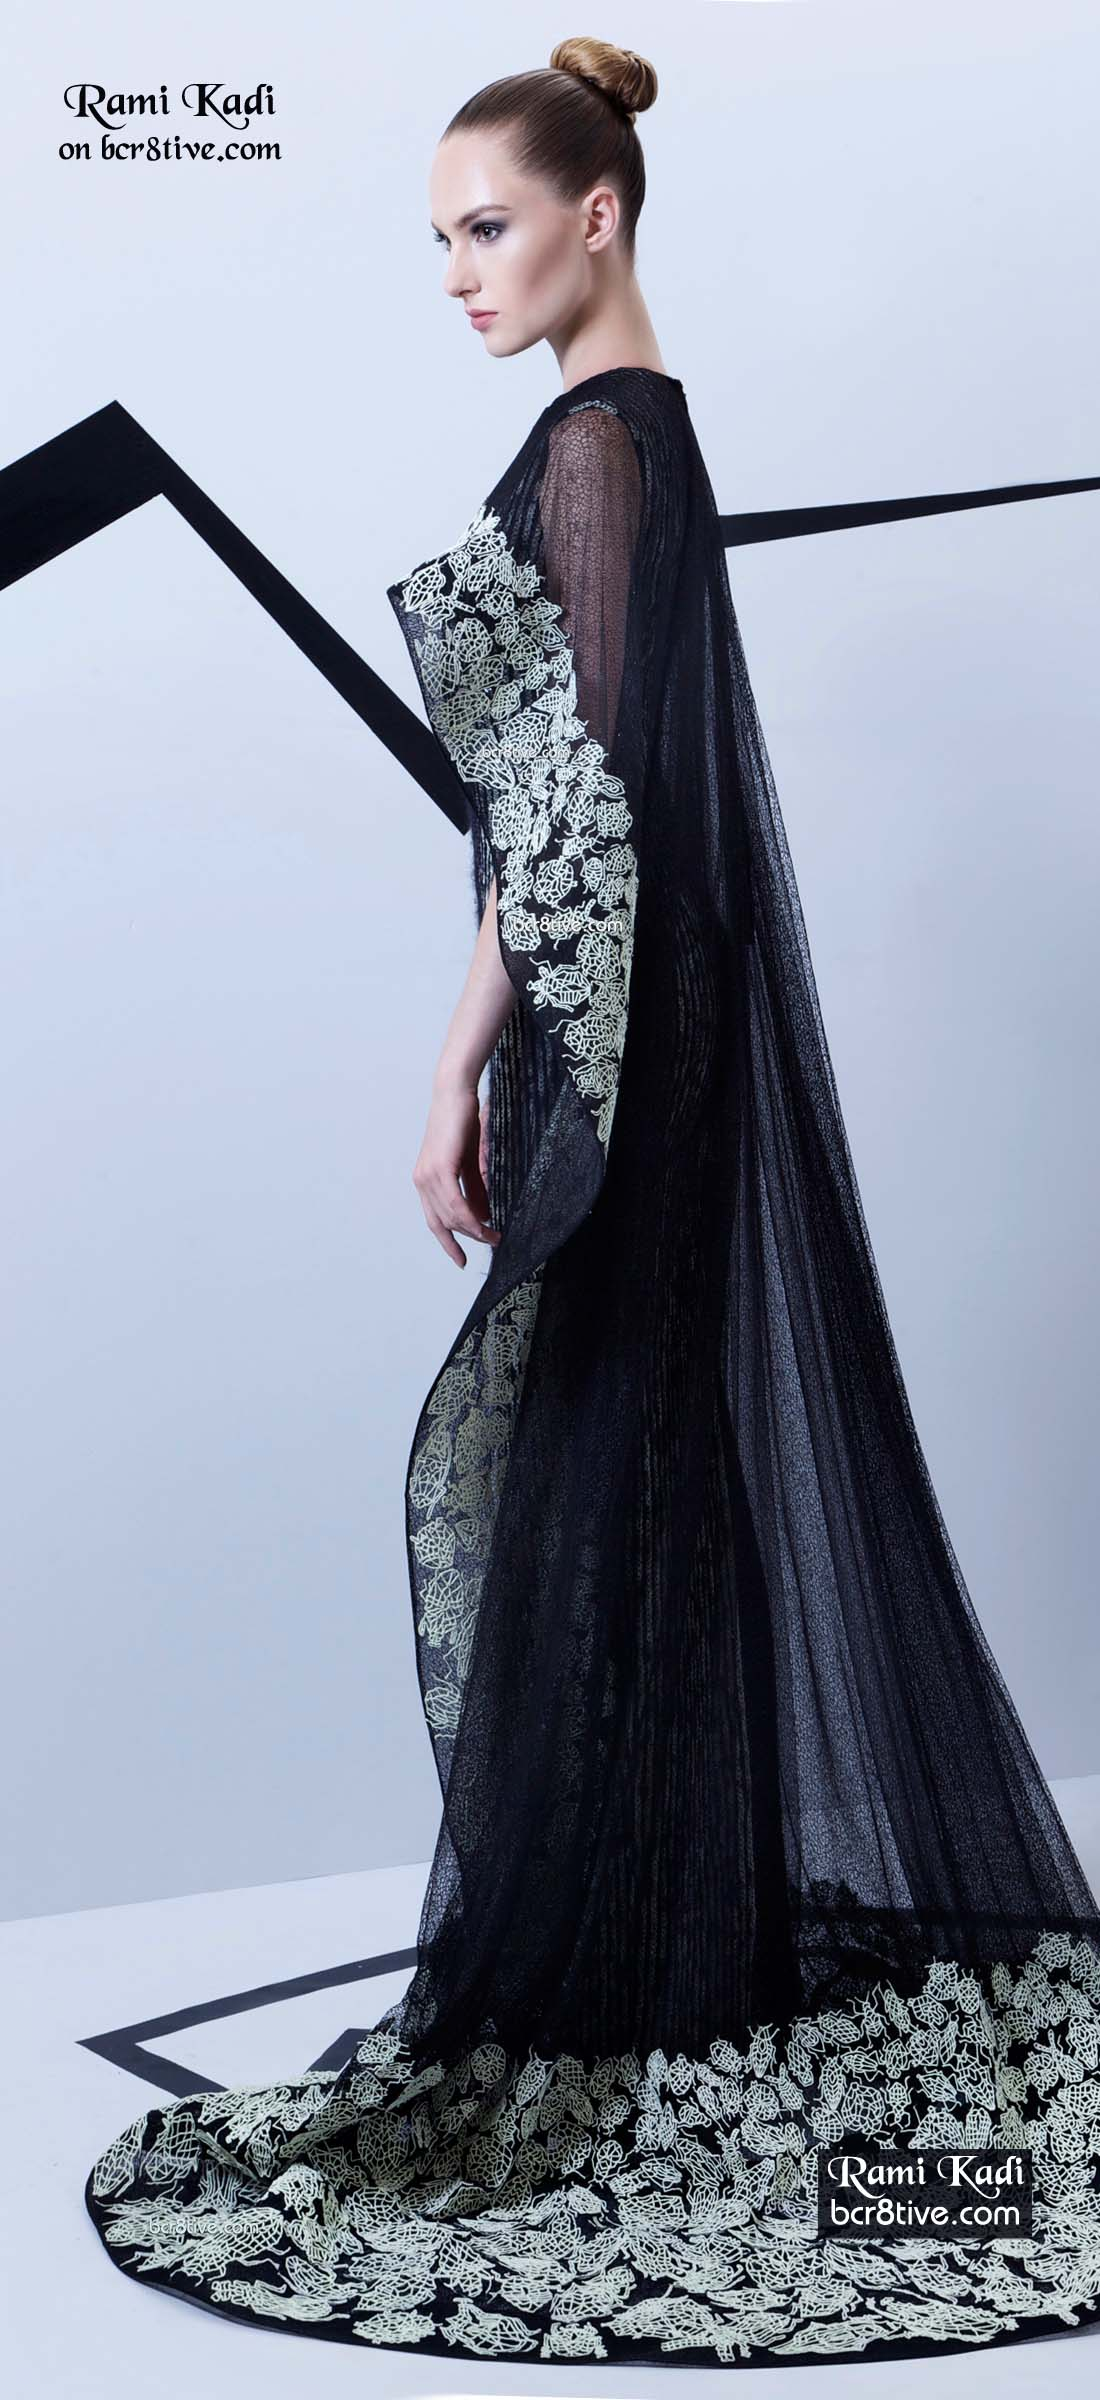 Rami Kadi Haute Couture Design from Lucioles Collection